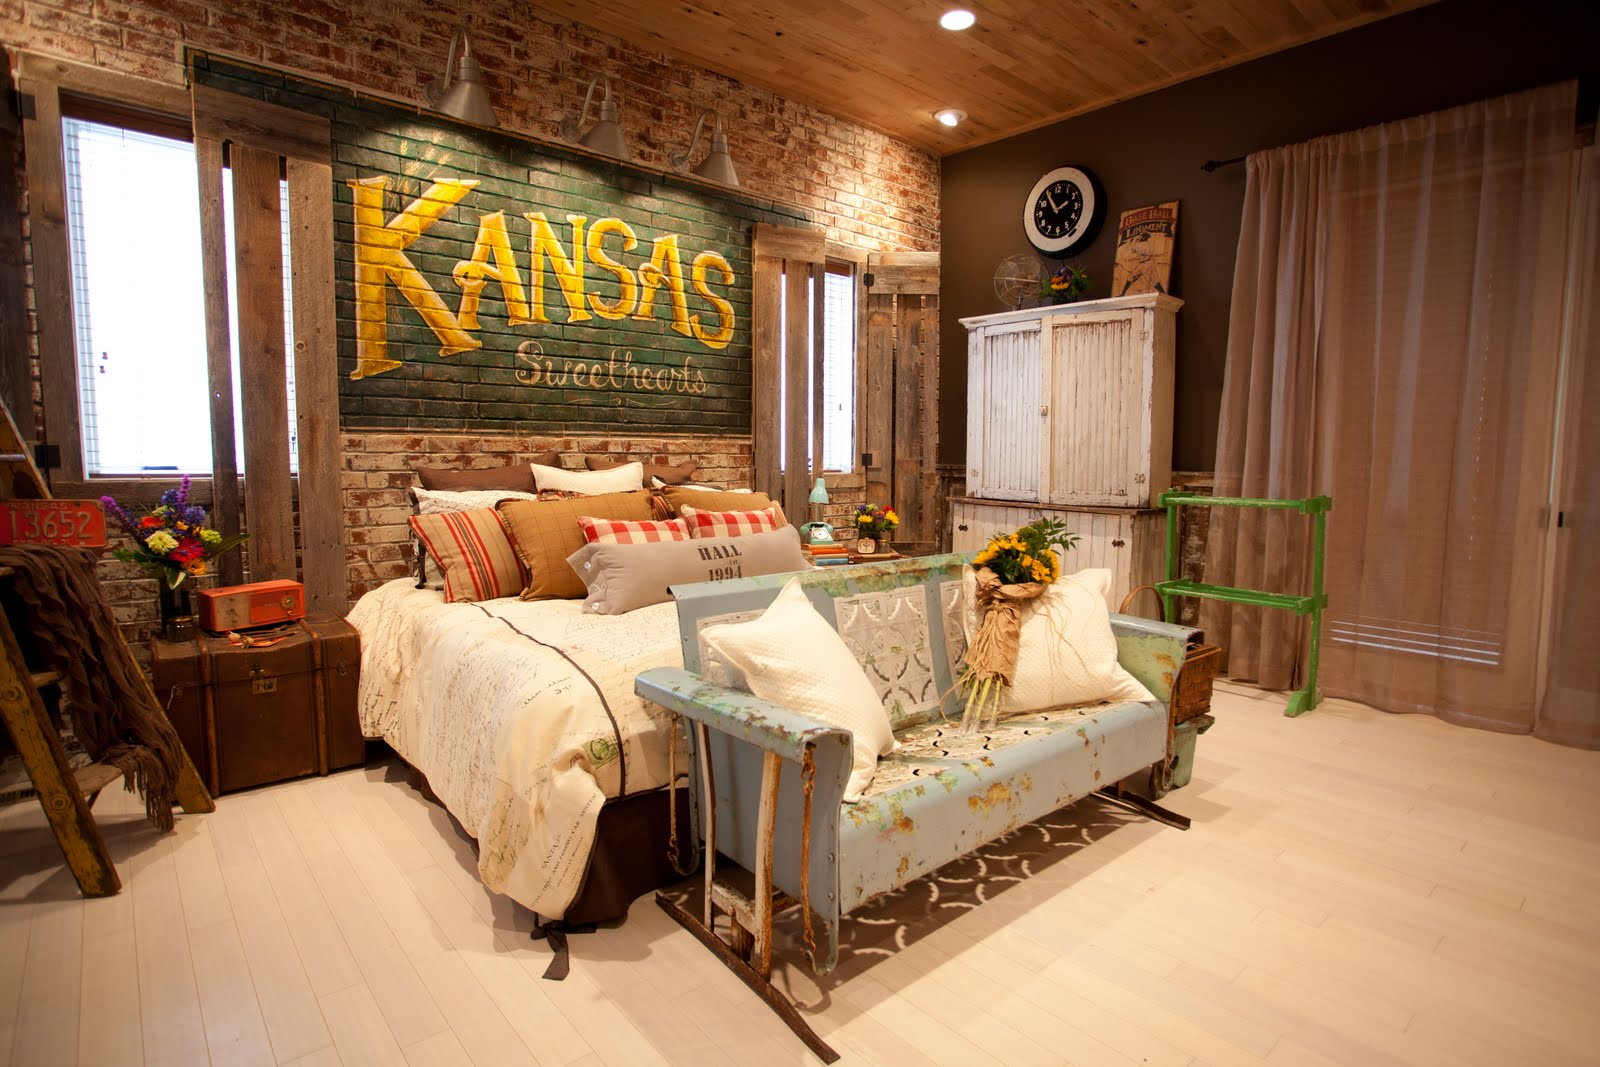 Imgs for extreme makeover home edition master bedrooms for Extreme makeover home edition bedroom ideas